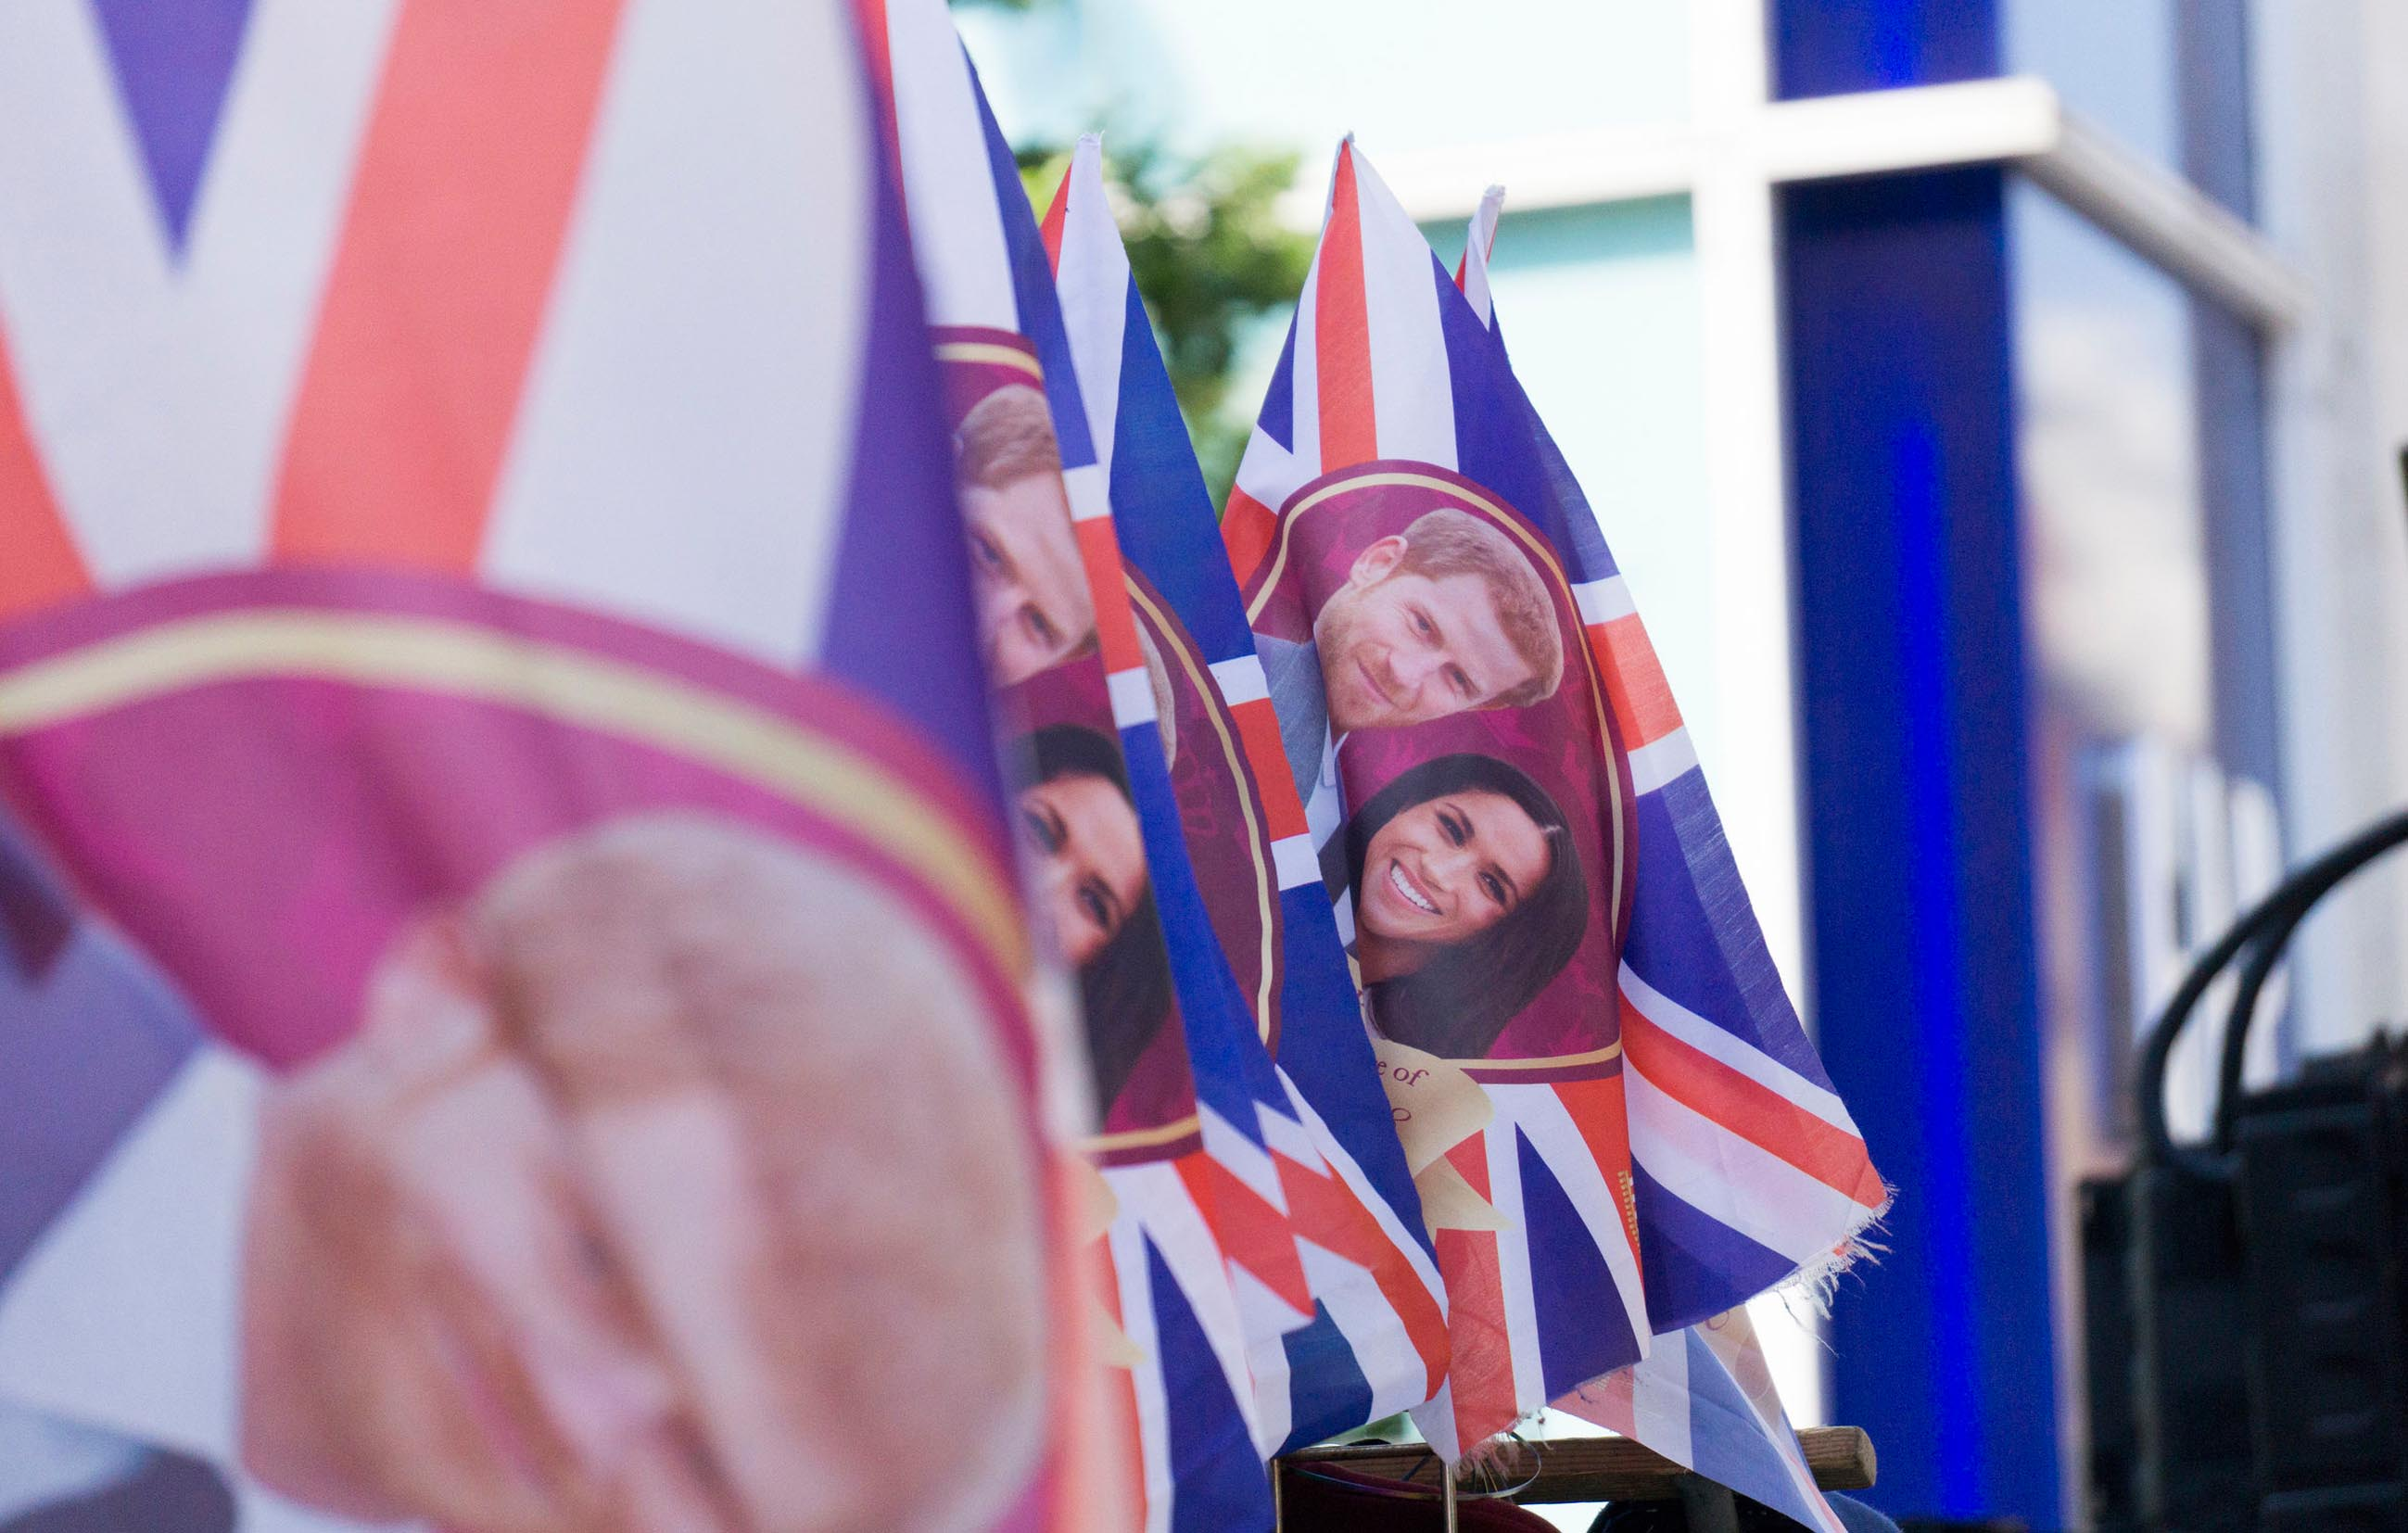 Mediation Matters: In royal circles and elsewhere, settling family disputes demands an open-minded focus on the future